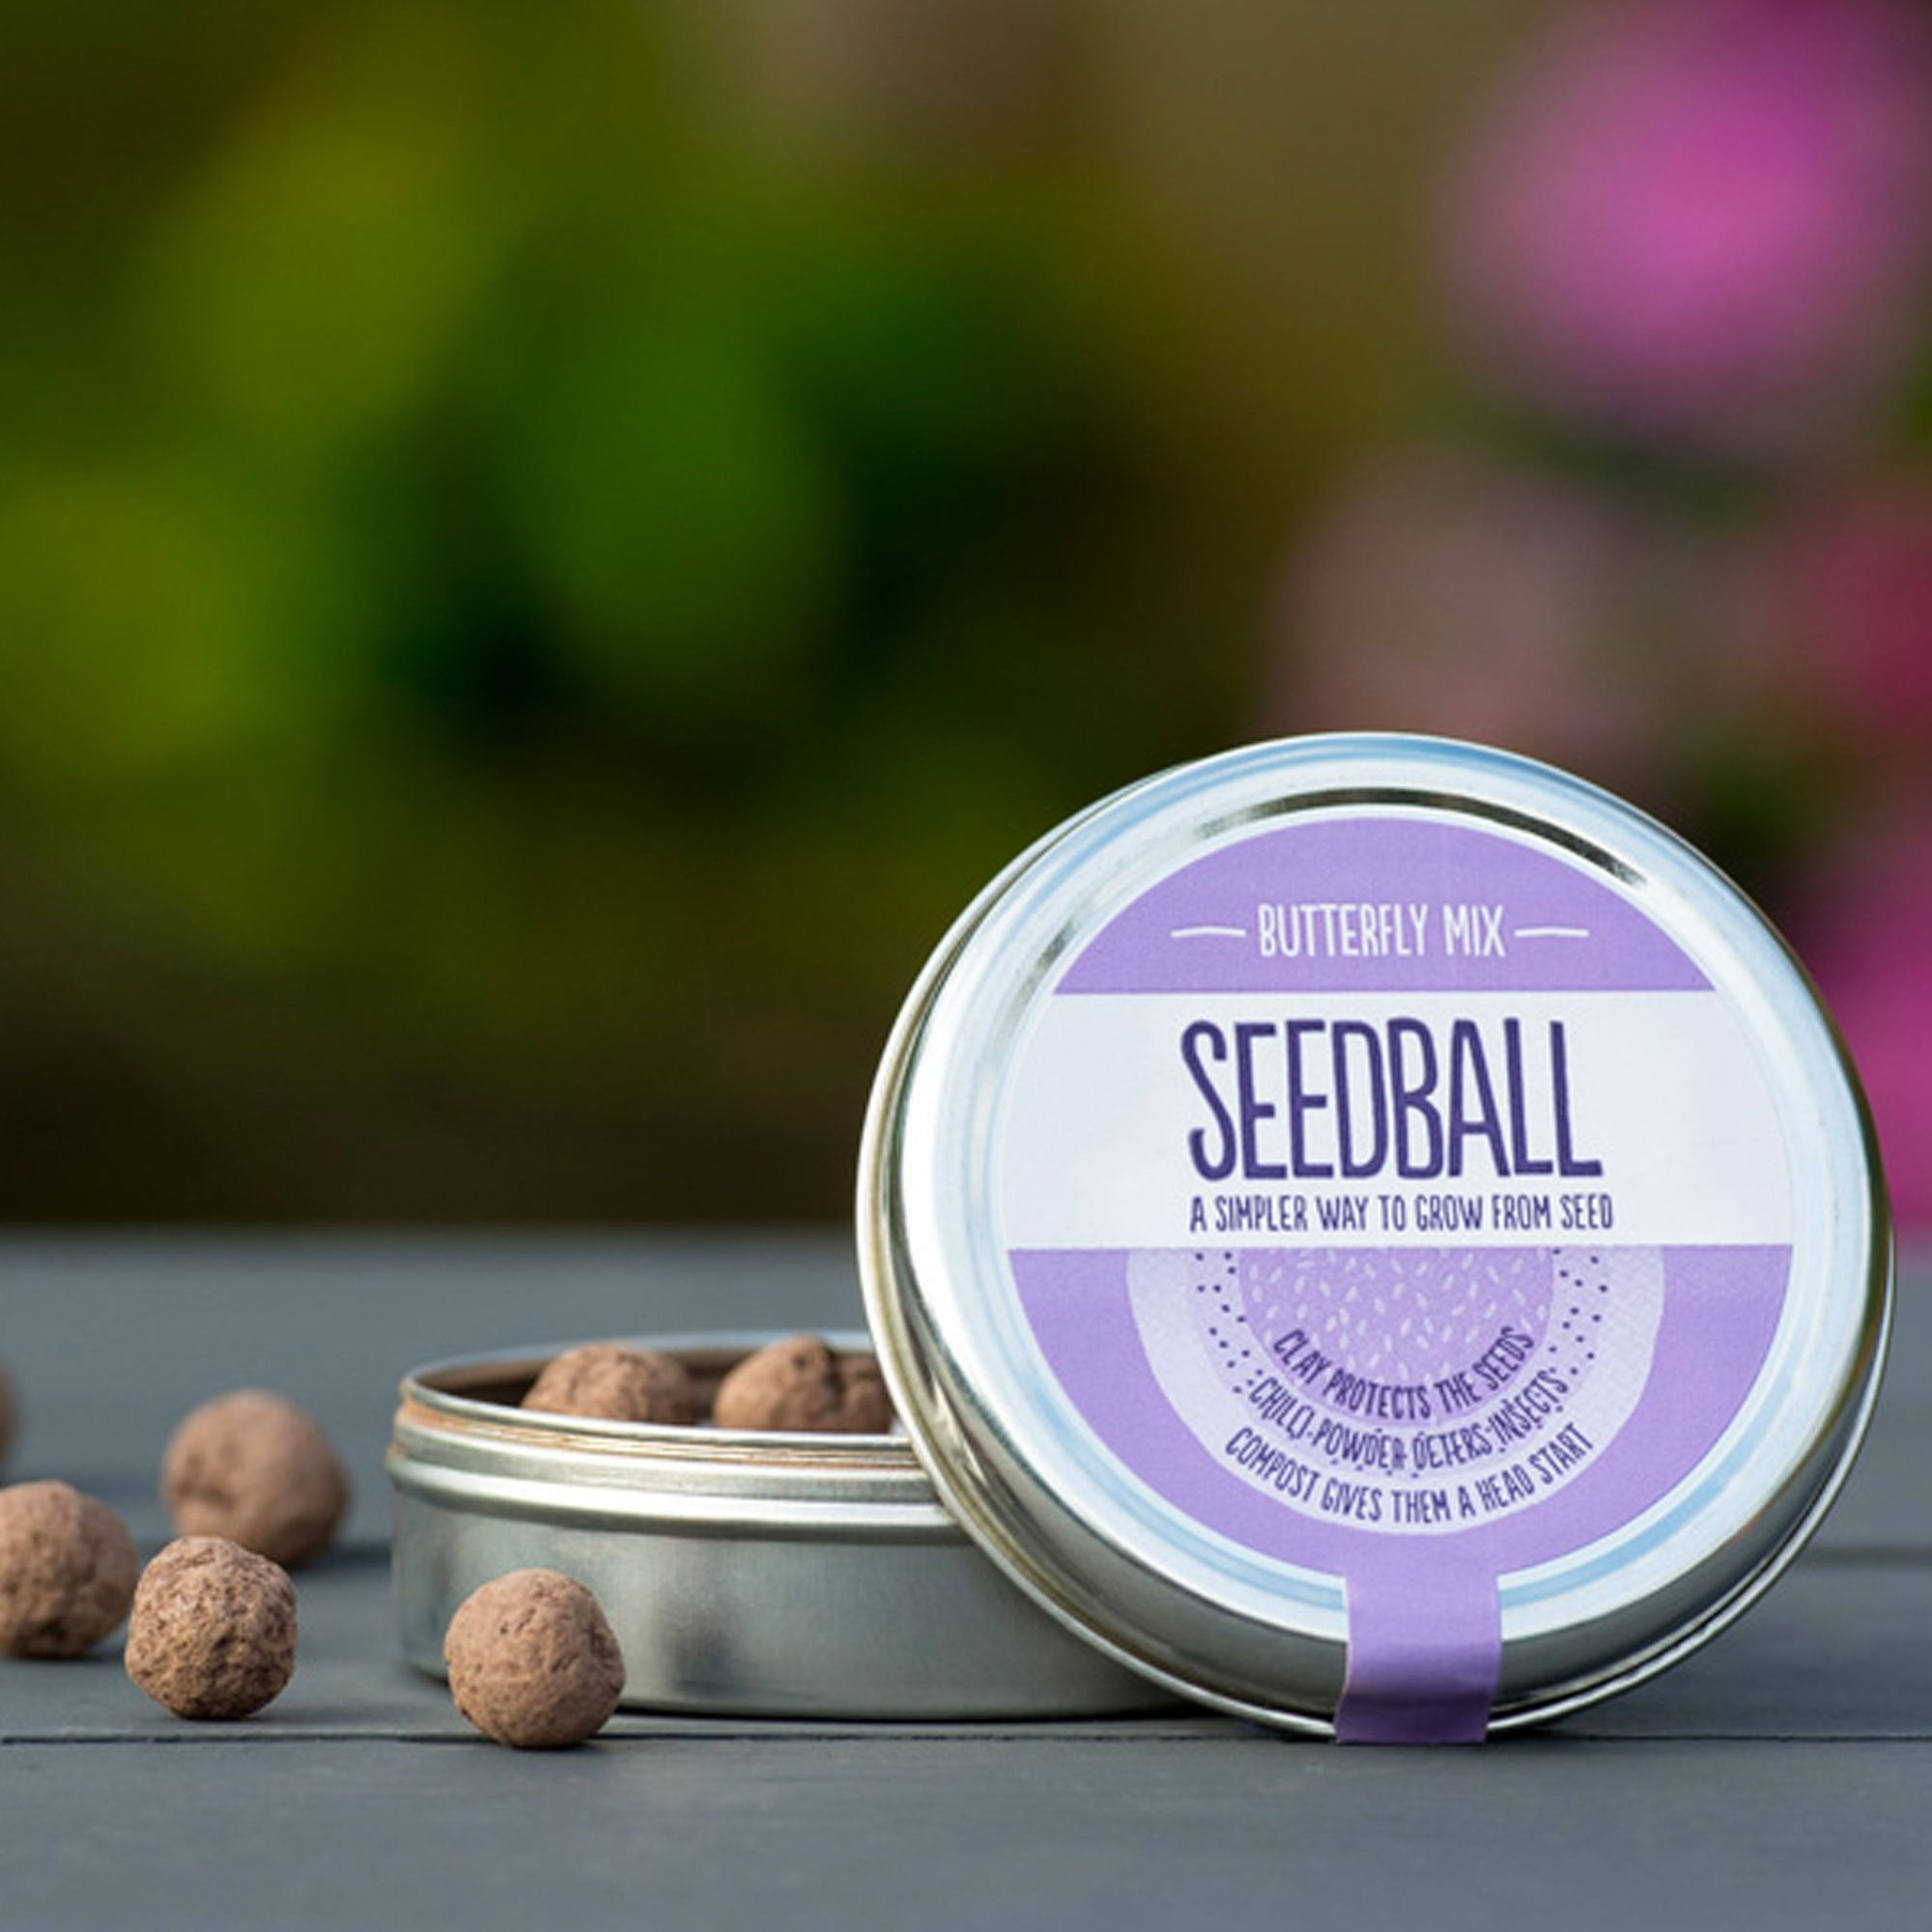 Seedball | Butterfly Mix Seedball Gift | BoxTree | Send a Gift